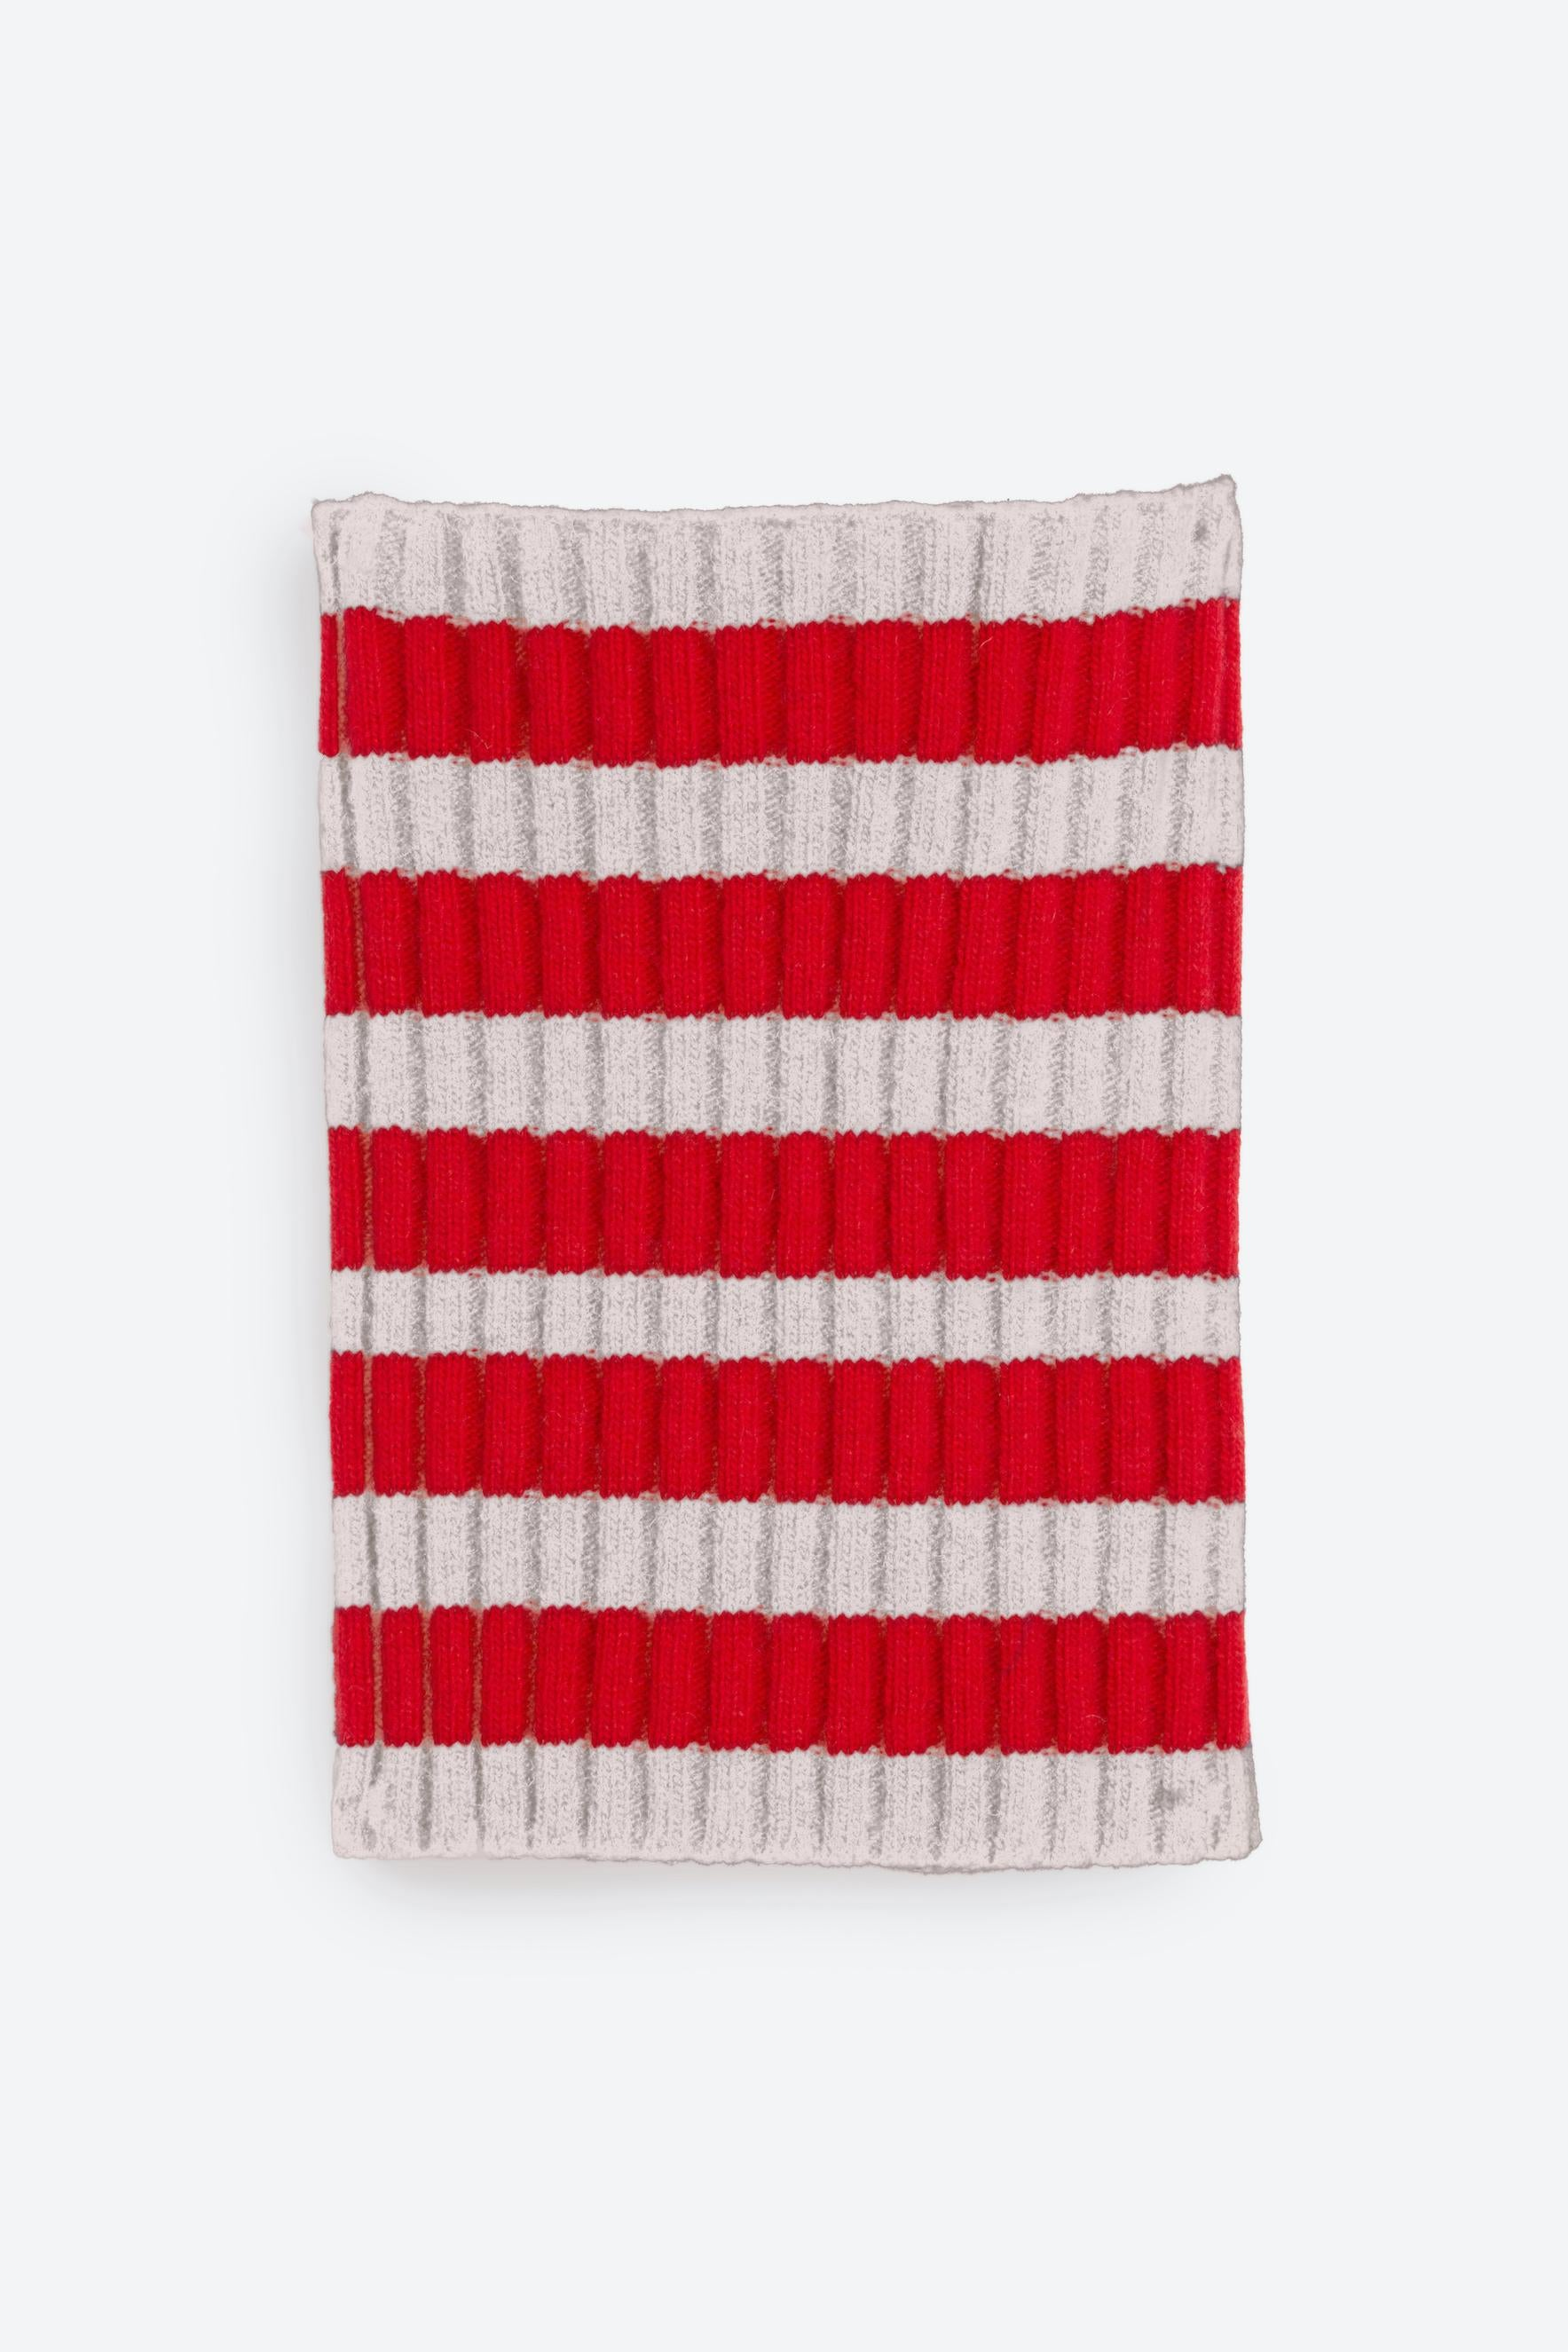 BALTHAZAR | Stripe Beige / Red